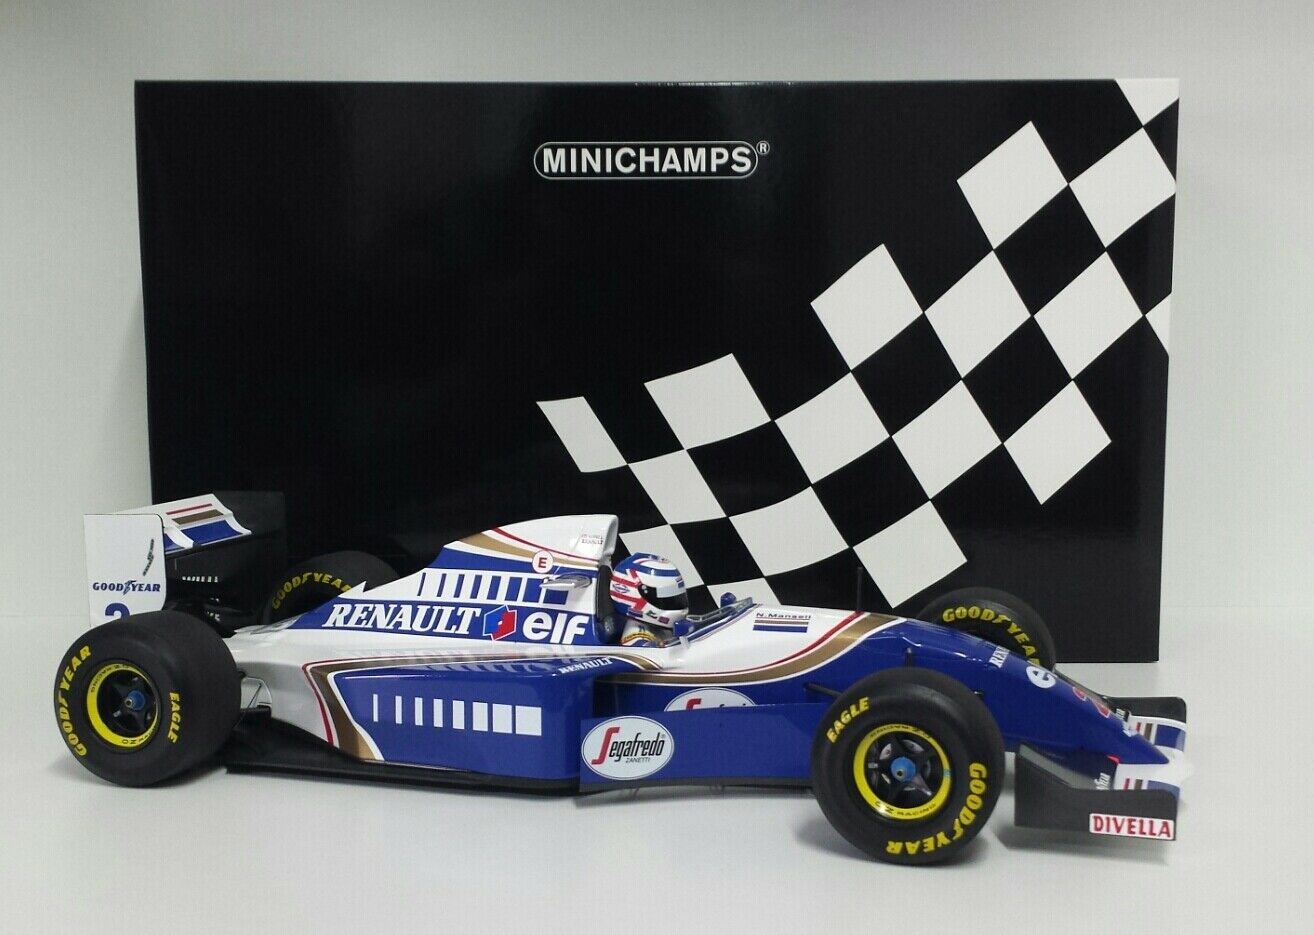 Minichamps 1 12 Modelo Auto F1 Diecast Williams Renault Fw16 Mansell 1994 New